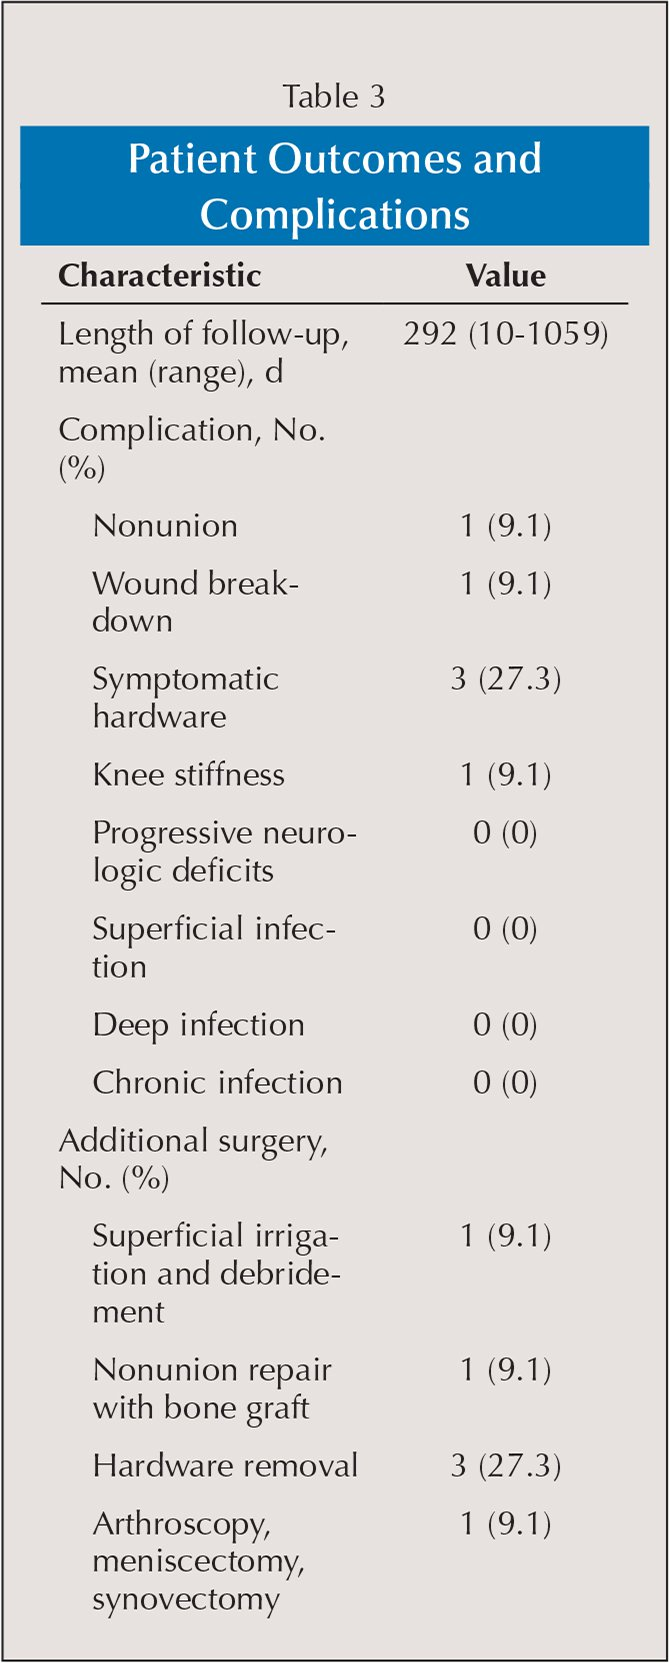 Patient Outcomes and Complications